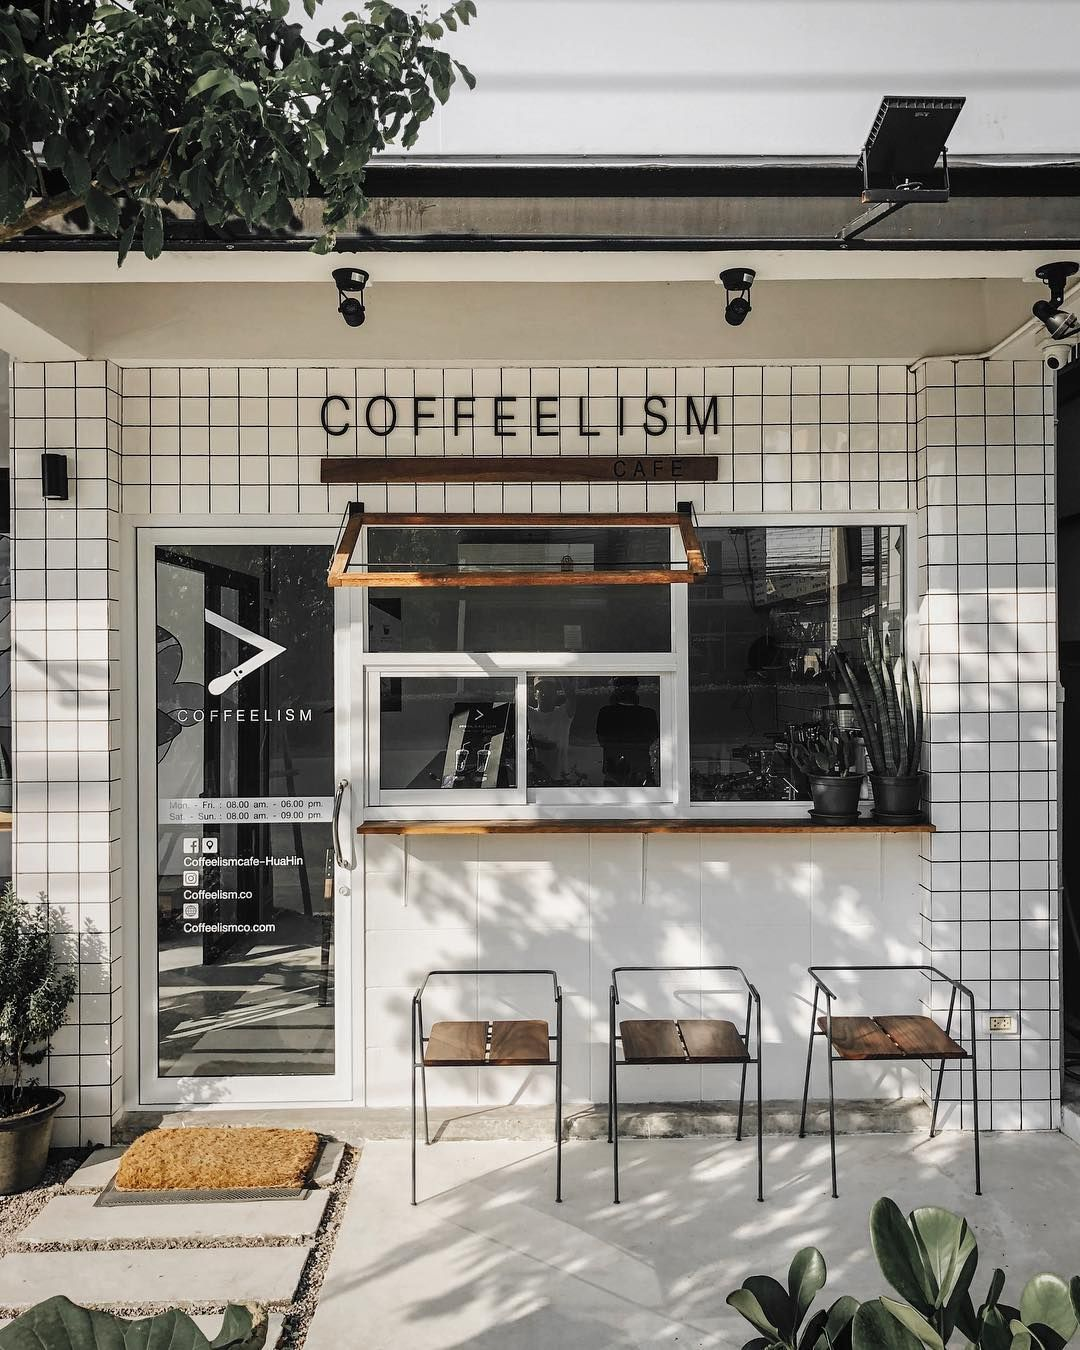 17th On Instagram 2019 Huahincafe 17th Huahin Cafehopping Cafehoppinghuahin Coffee Shop Decor Cafe Interior Design Coffee Shop Design